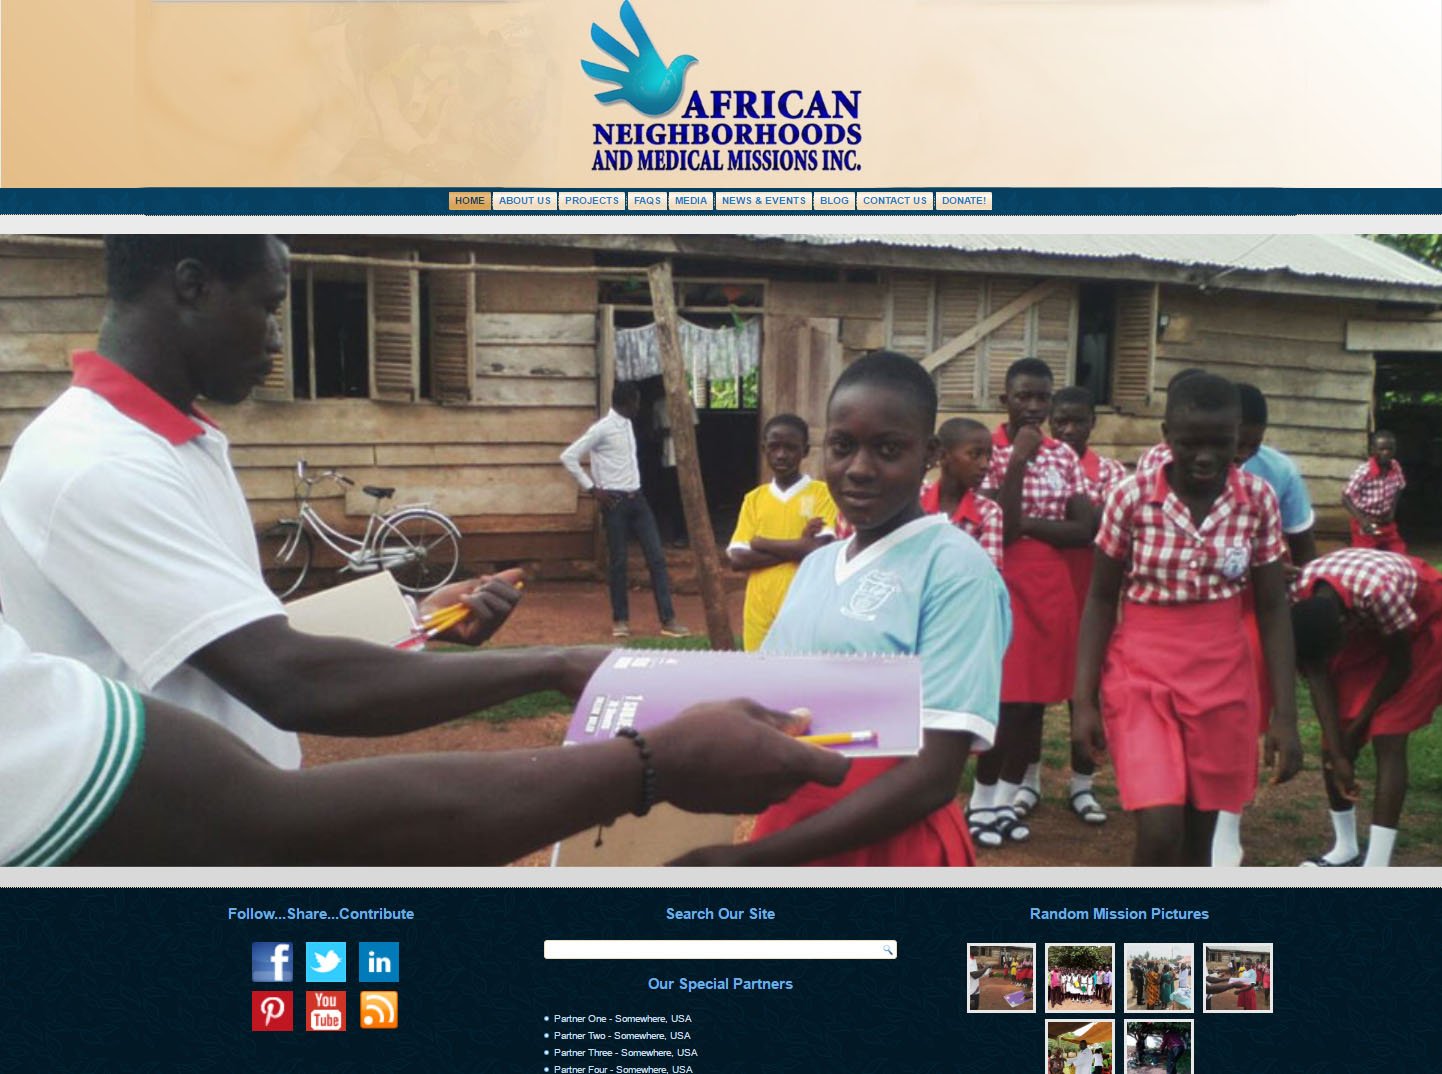 African Neighborhoods & Medical Missions, Inc.